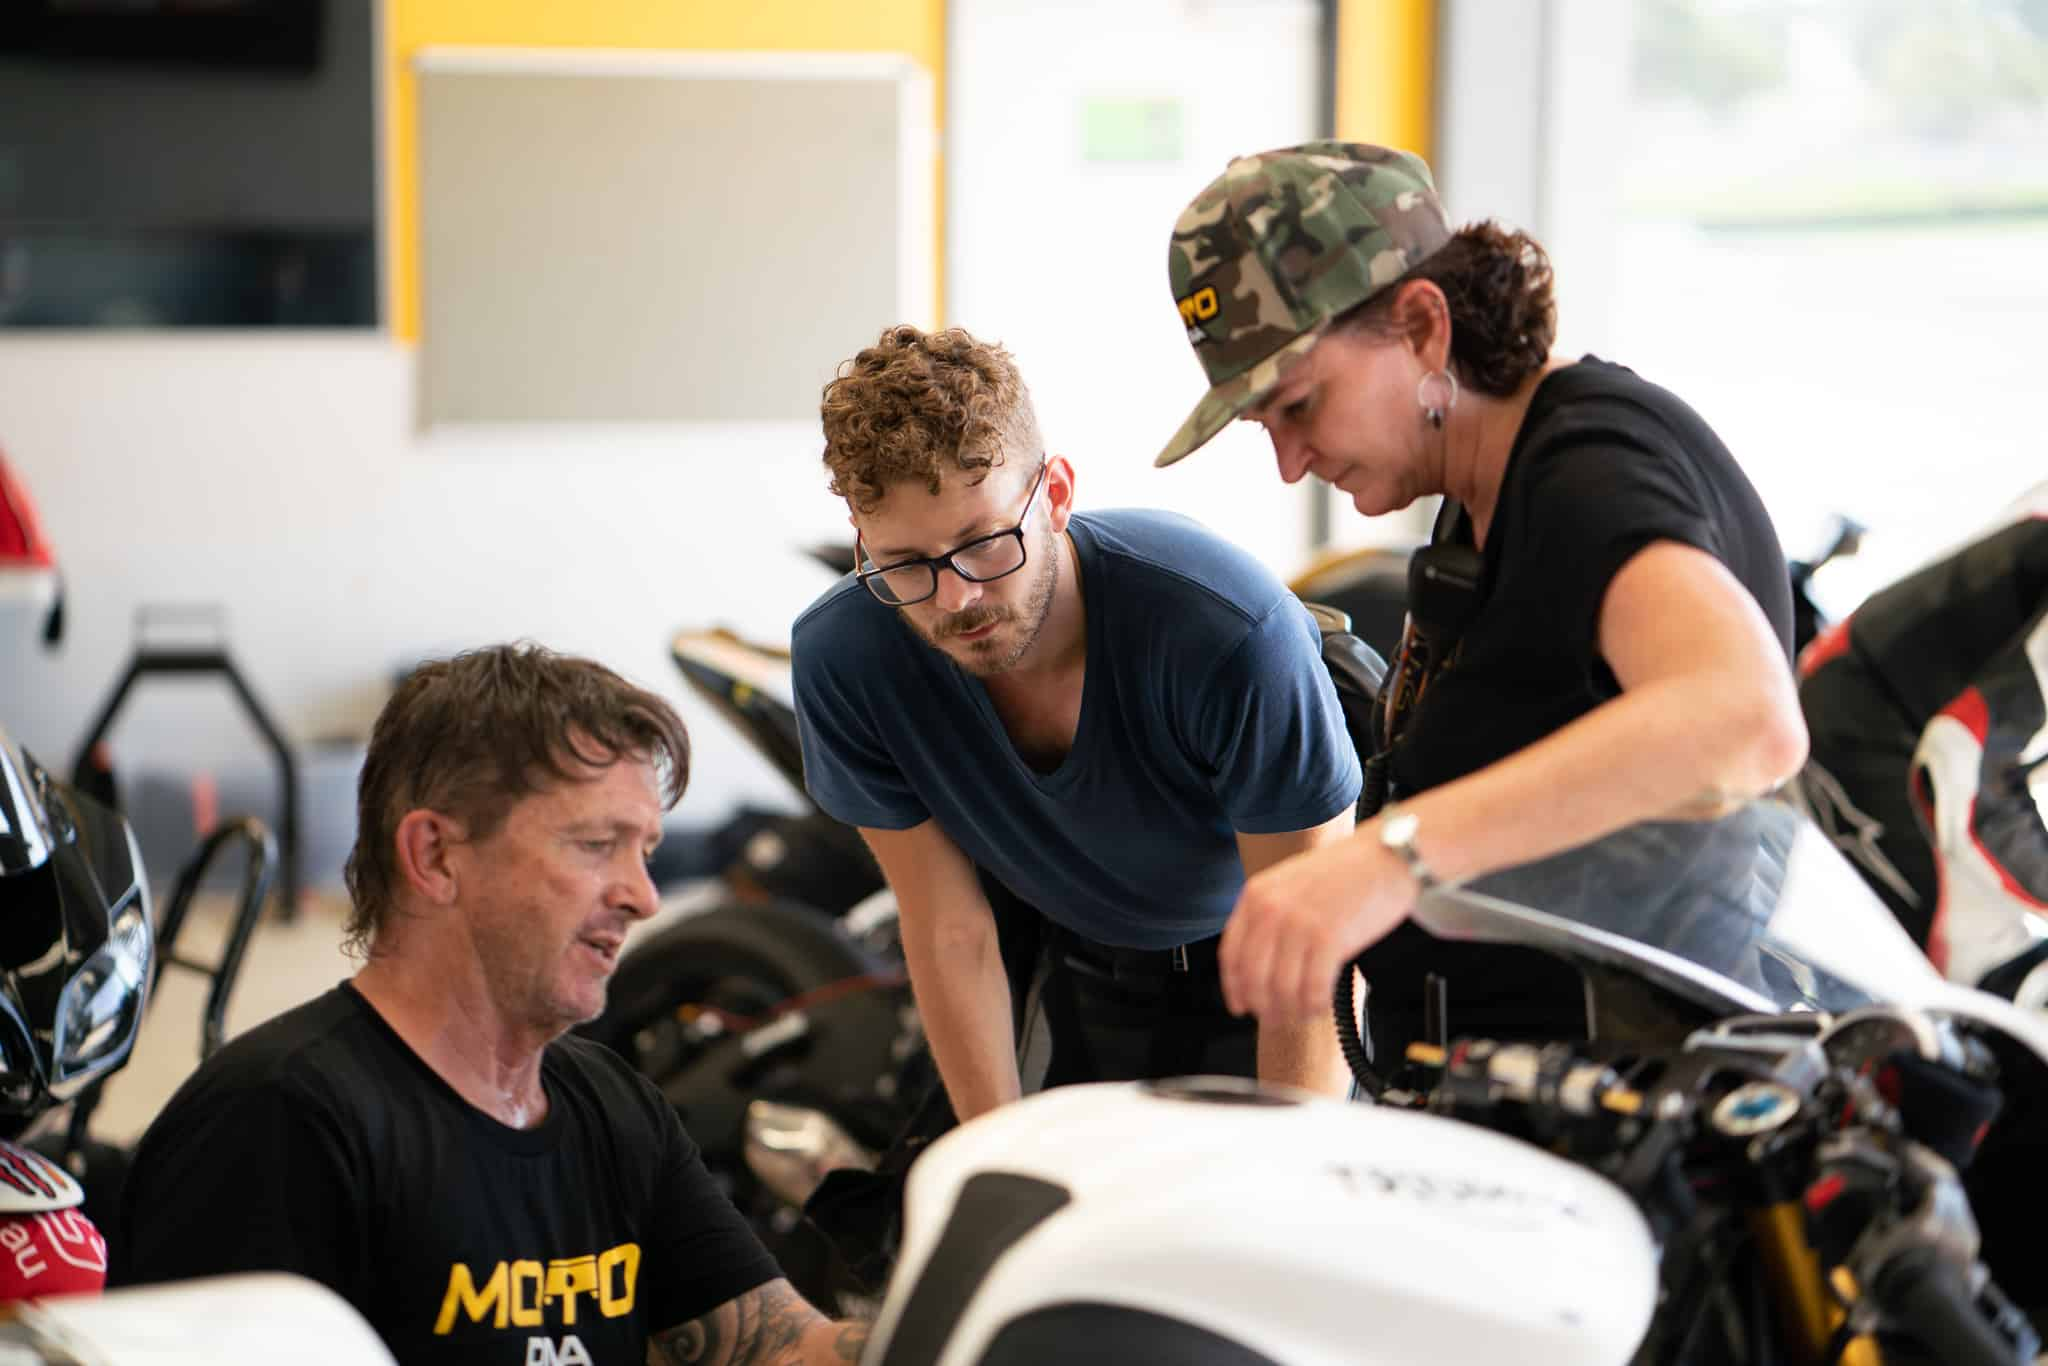 BSB Star Josh Waters Coaching motoDNA at Sydney Motorsport Park